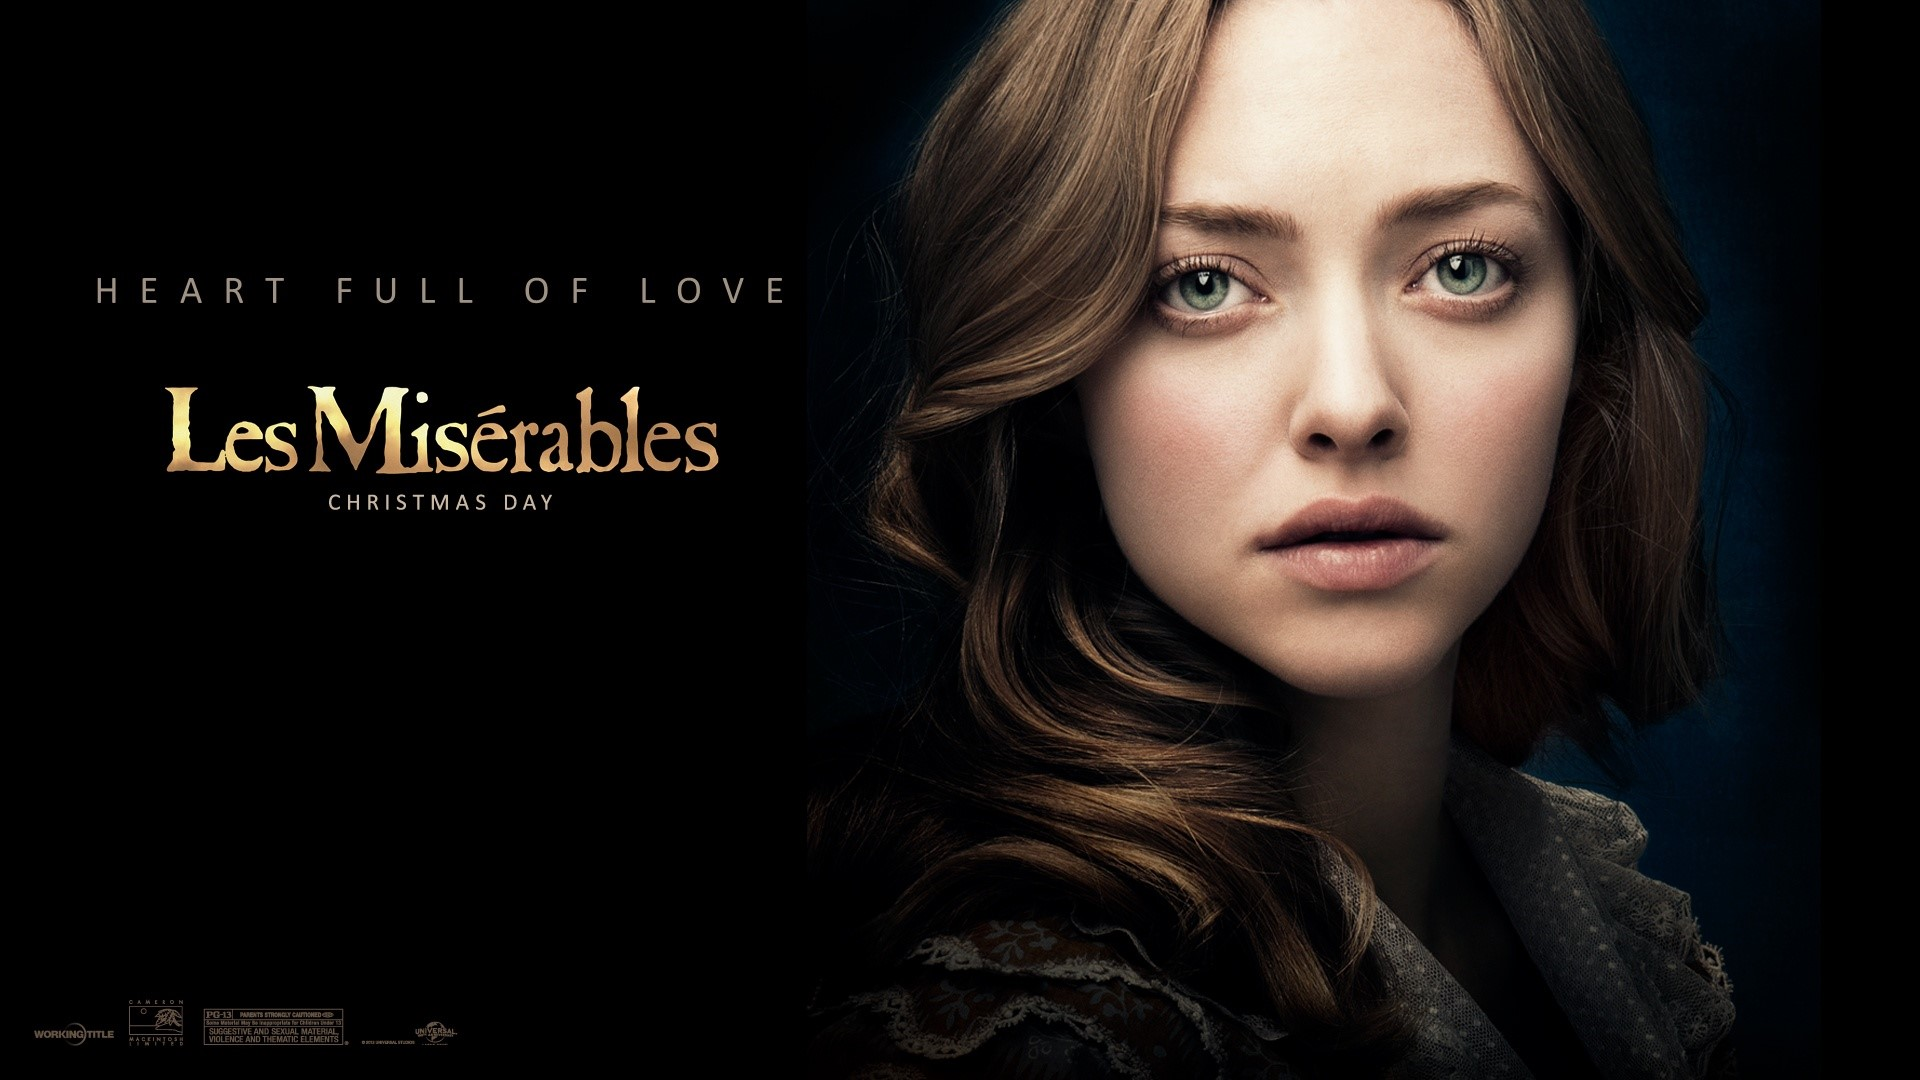 Wallpaper Amanda Seyfried as Fantine